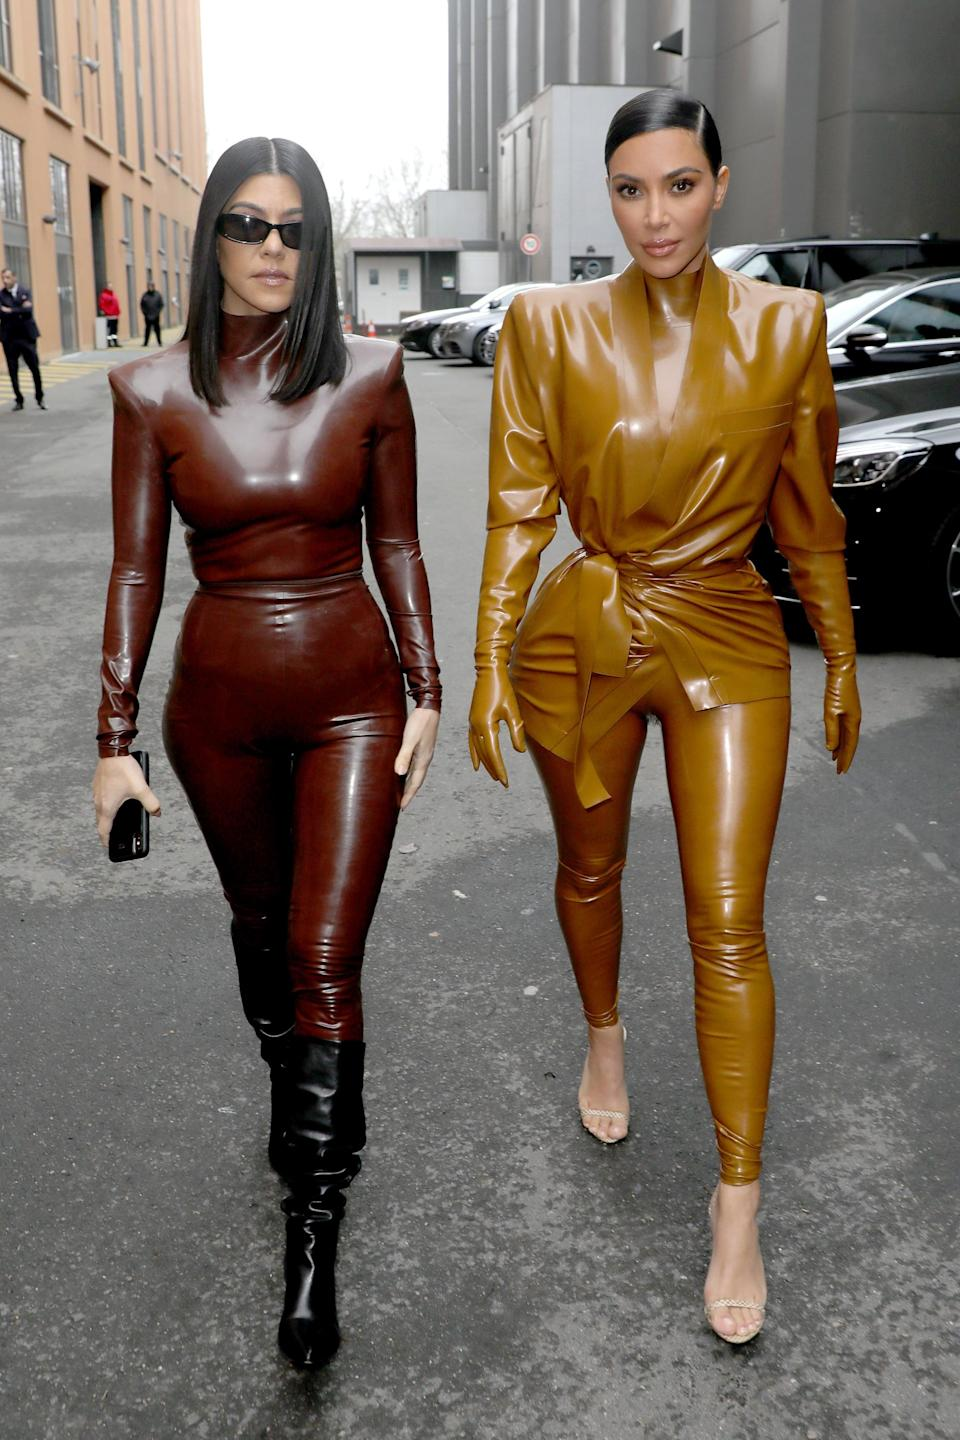 "<p>While 2020 might not have included many red carpets, that didn't stop the family from continuing to serve up looks, like these head-to-toe latex outfits. <strong>KUWTK</strong> viewers got a hilarious look at how hard it was for <a href=""https://www.popsugar.com/fashion/kim-kardashian-latex-balmain-outfit-video-clip-47332225"" class=""link rapid-noclick-resp"" rel=""nofollow noopener"" target=""_blank"" data-ylk=""slk:Kim to get into this Balmain outfit before the show"">Kim to get into this Balmain outfit before the show</a>.</p>"